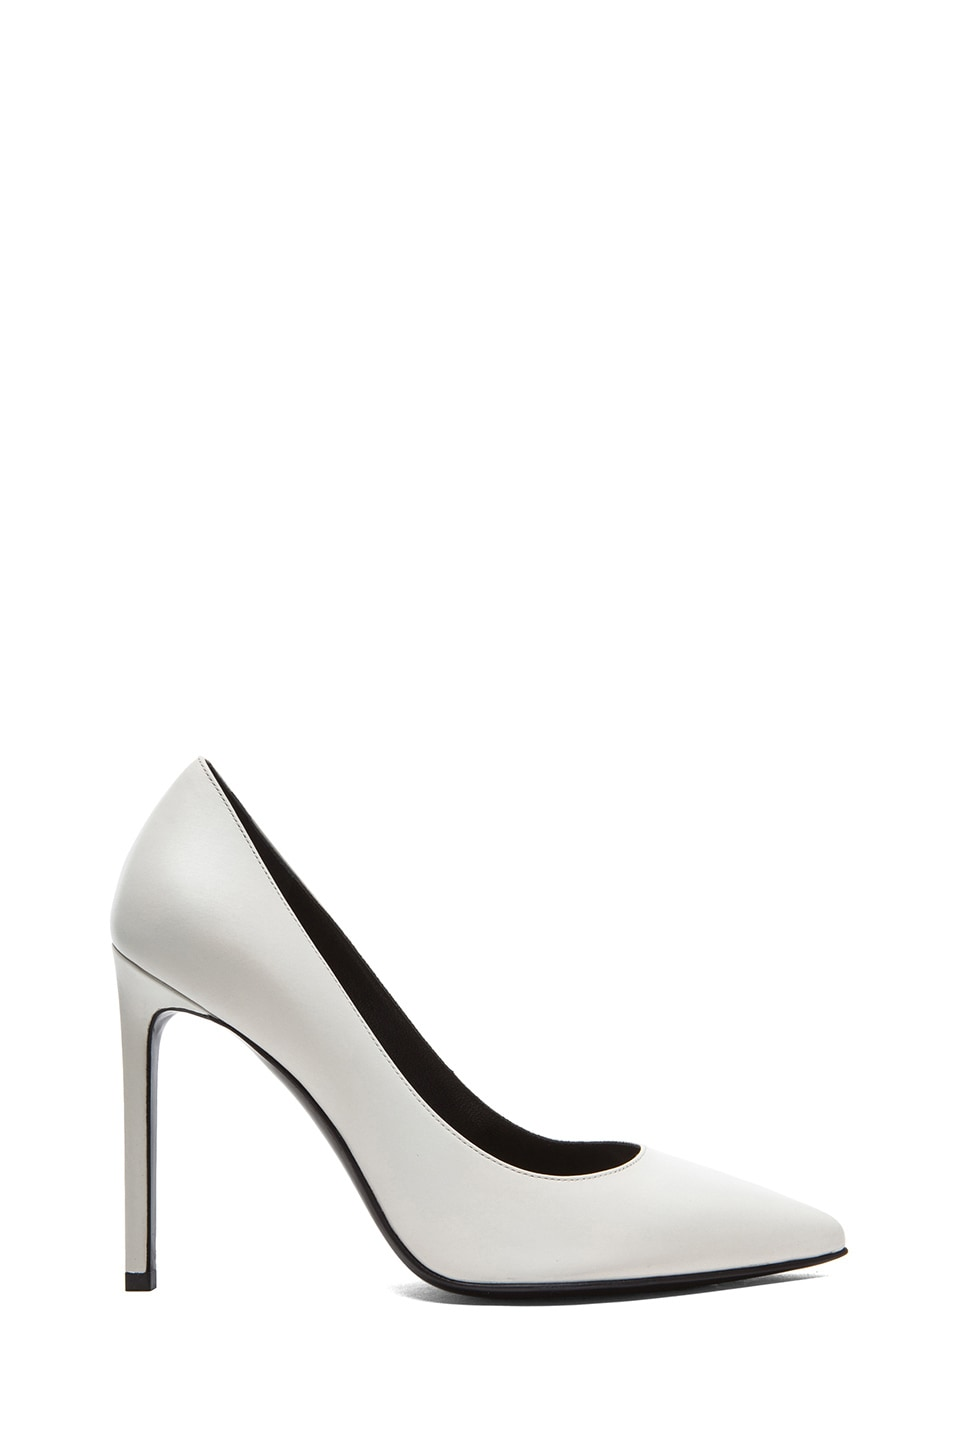 Image 1 of Saint Laurent Paris Calfskin Leather Pumps in White